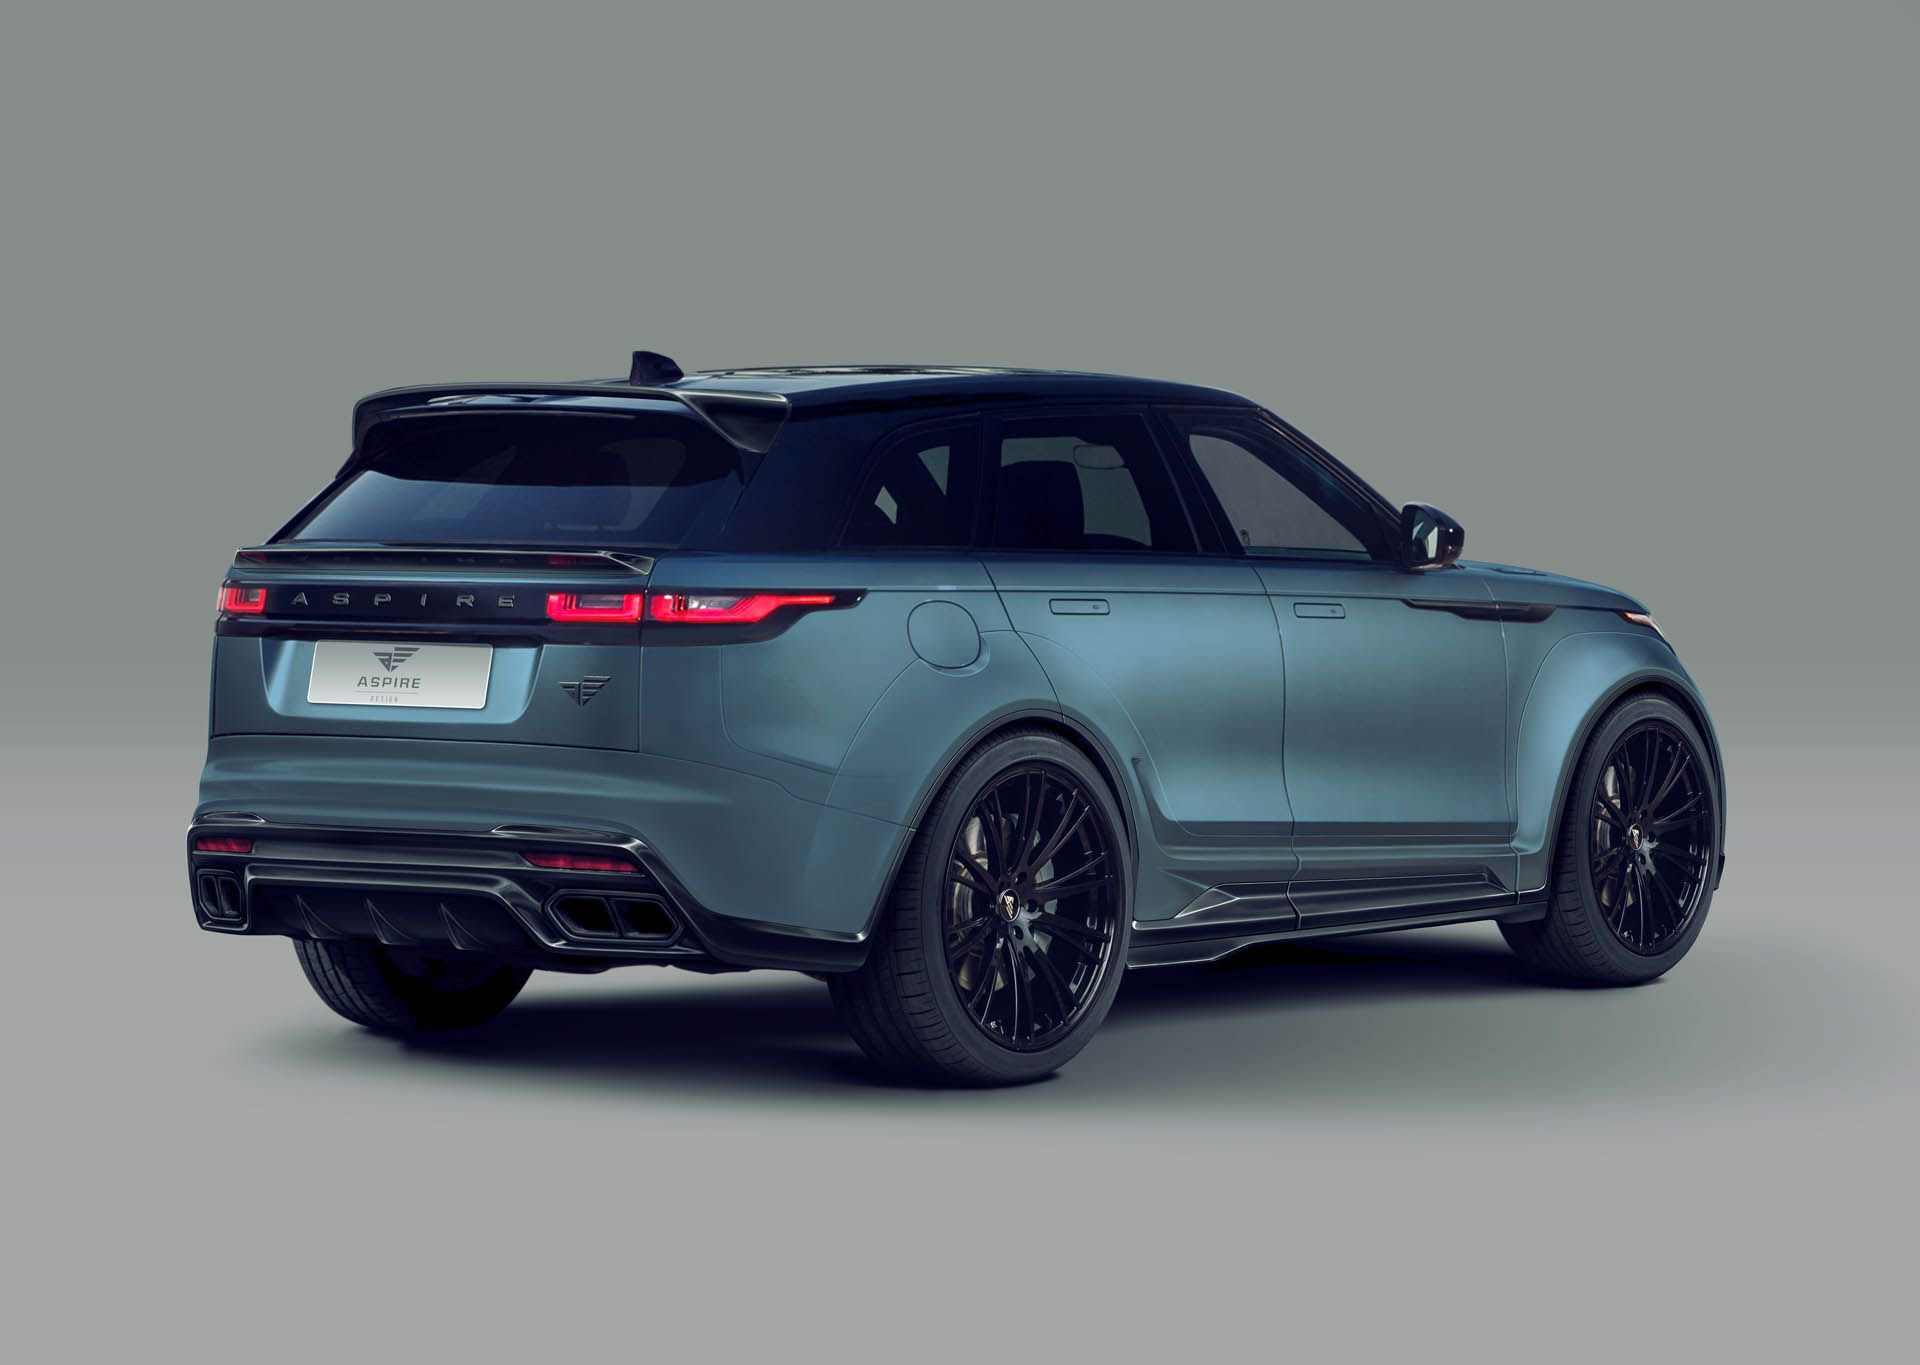 Range Rover Velar by Aspire Design (17)